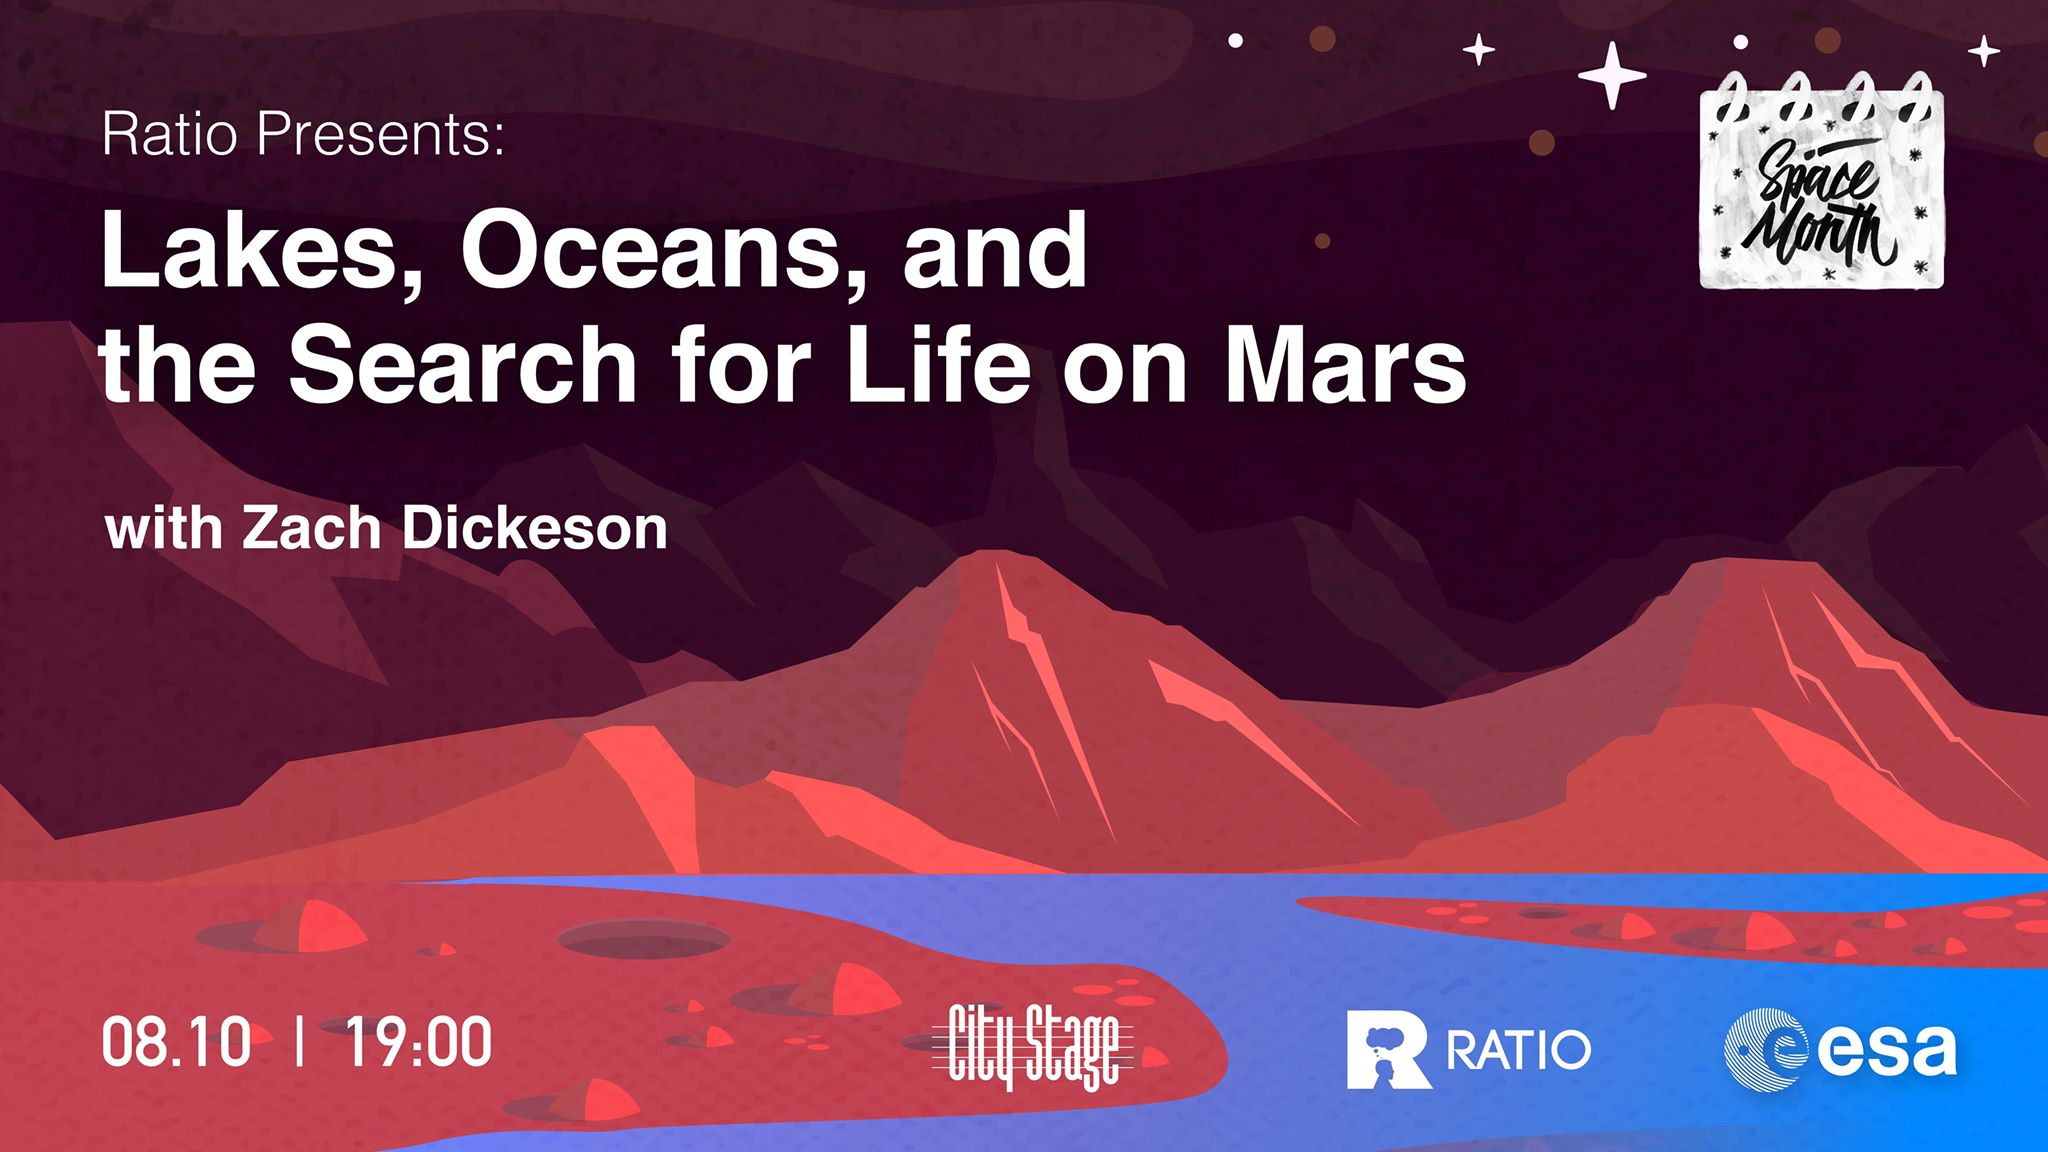 Ratio presents: Lakes, Oceans, and the Search for Life on Mars